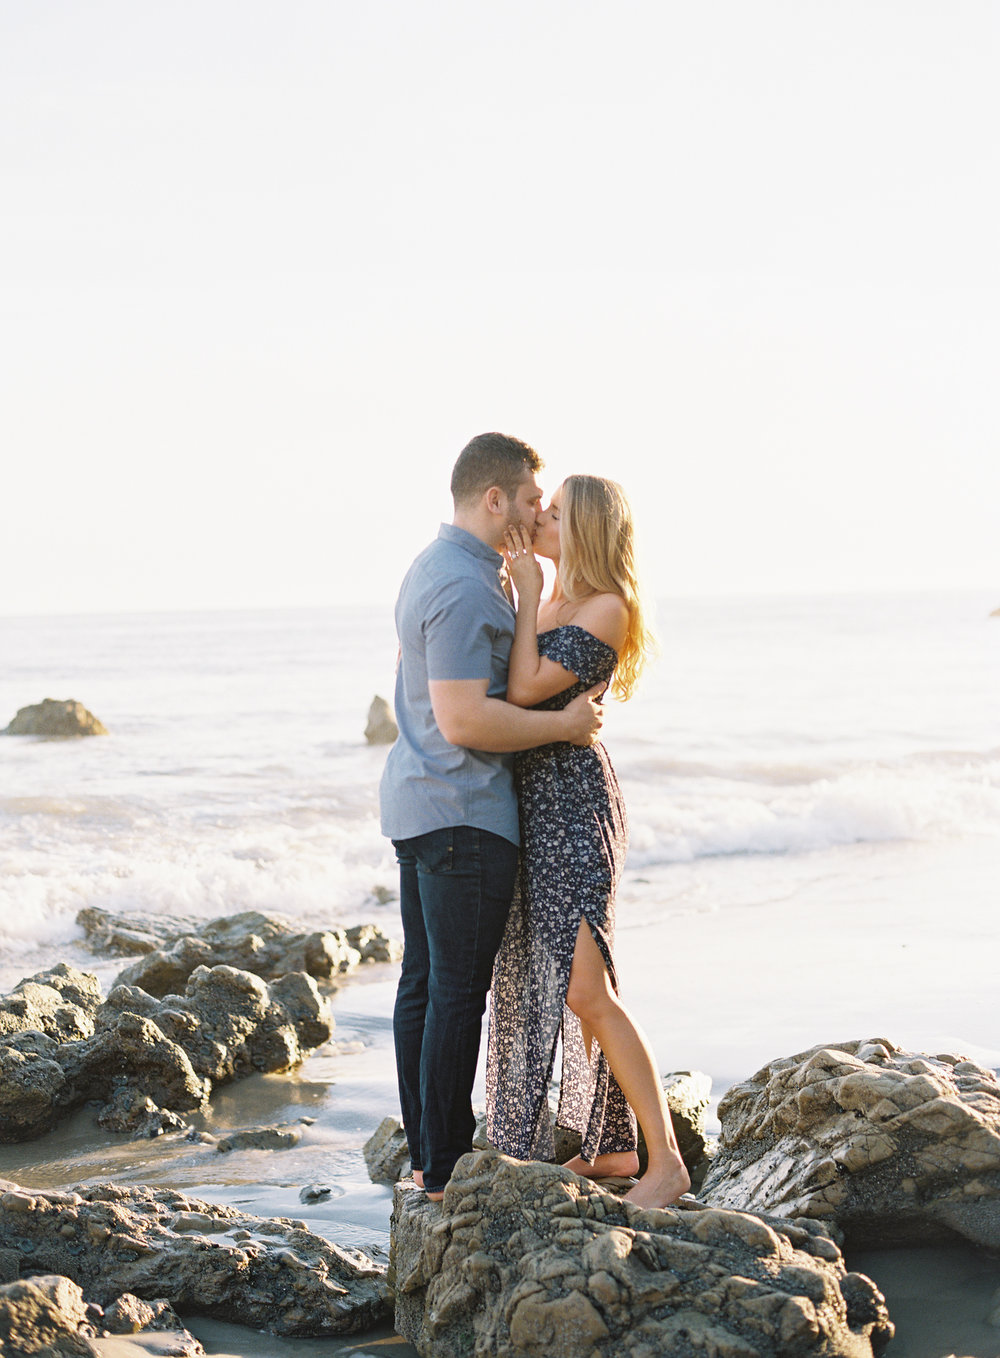 Taylor & Casey's Malibu Engagement-Carrie King Photographer-078.jpg